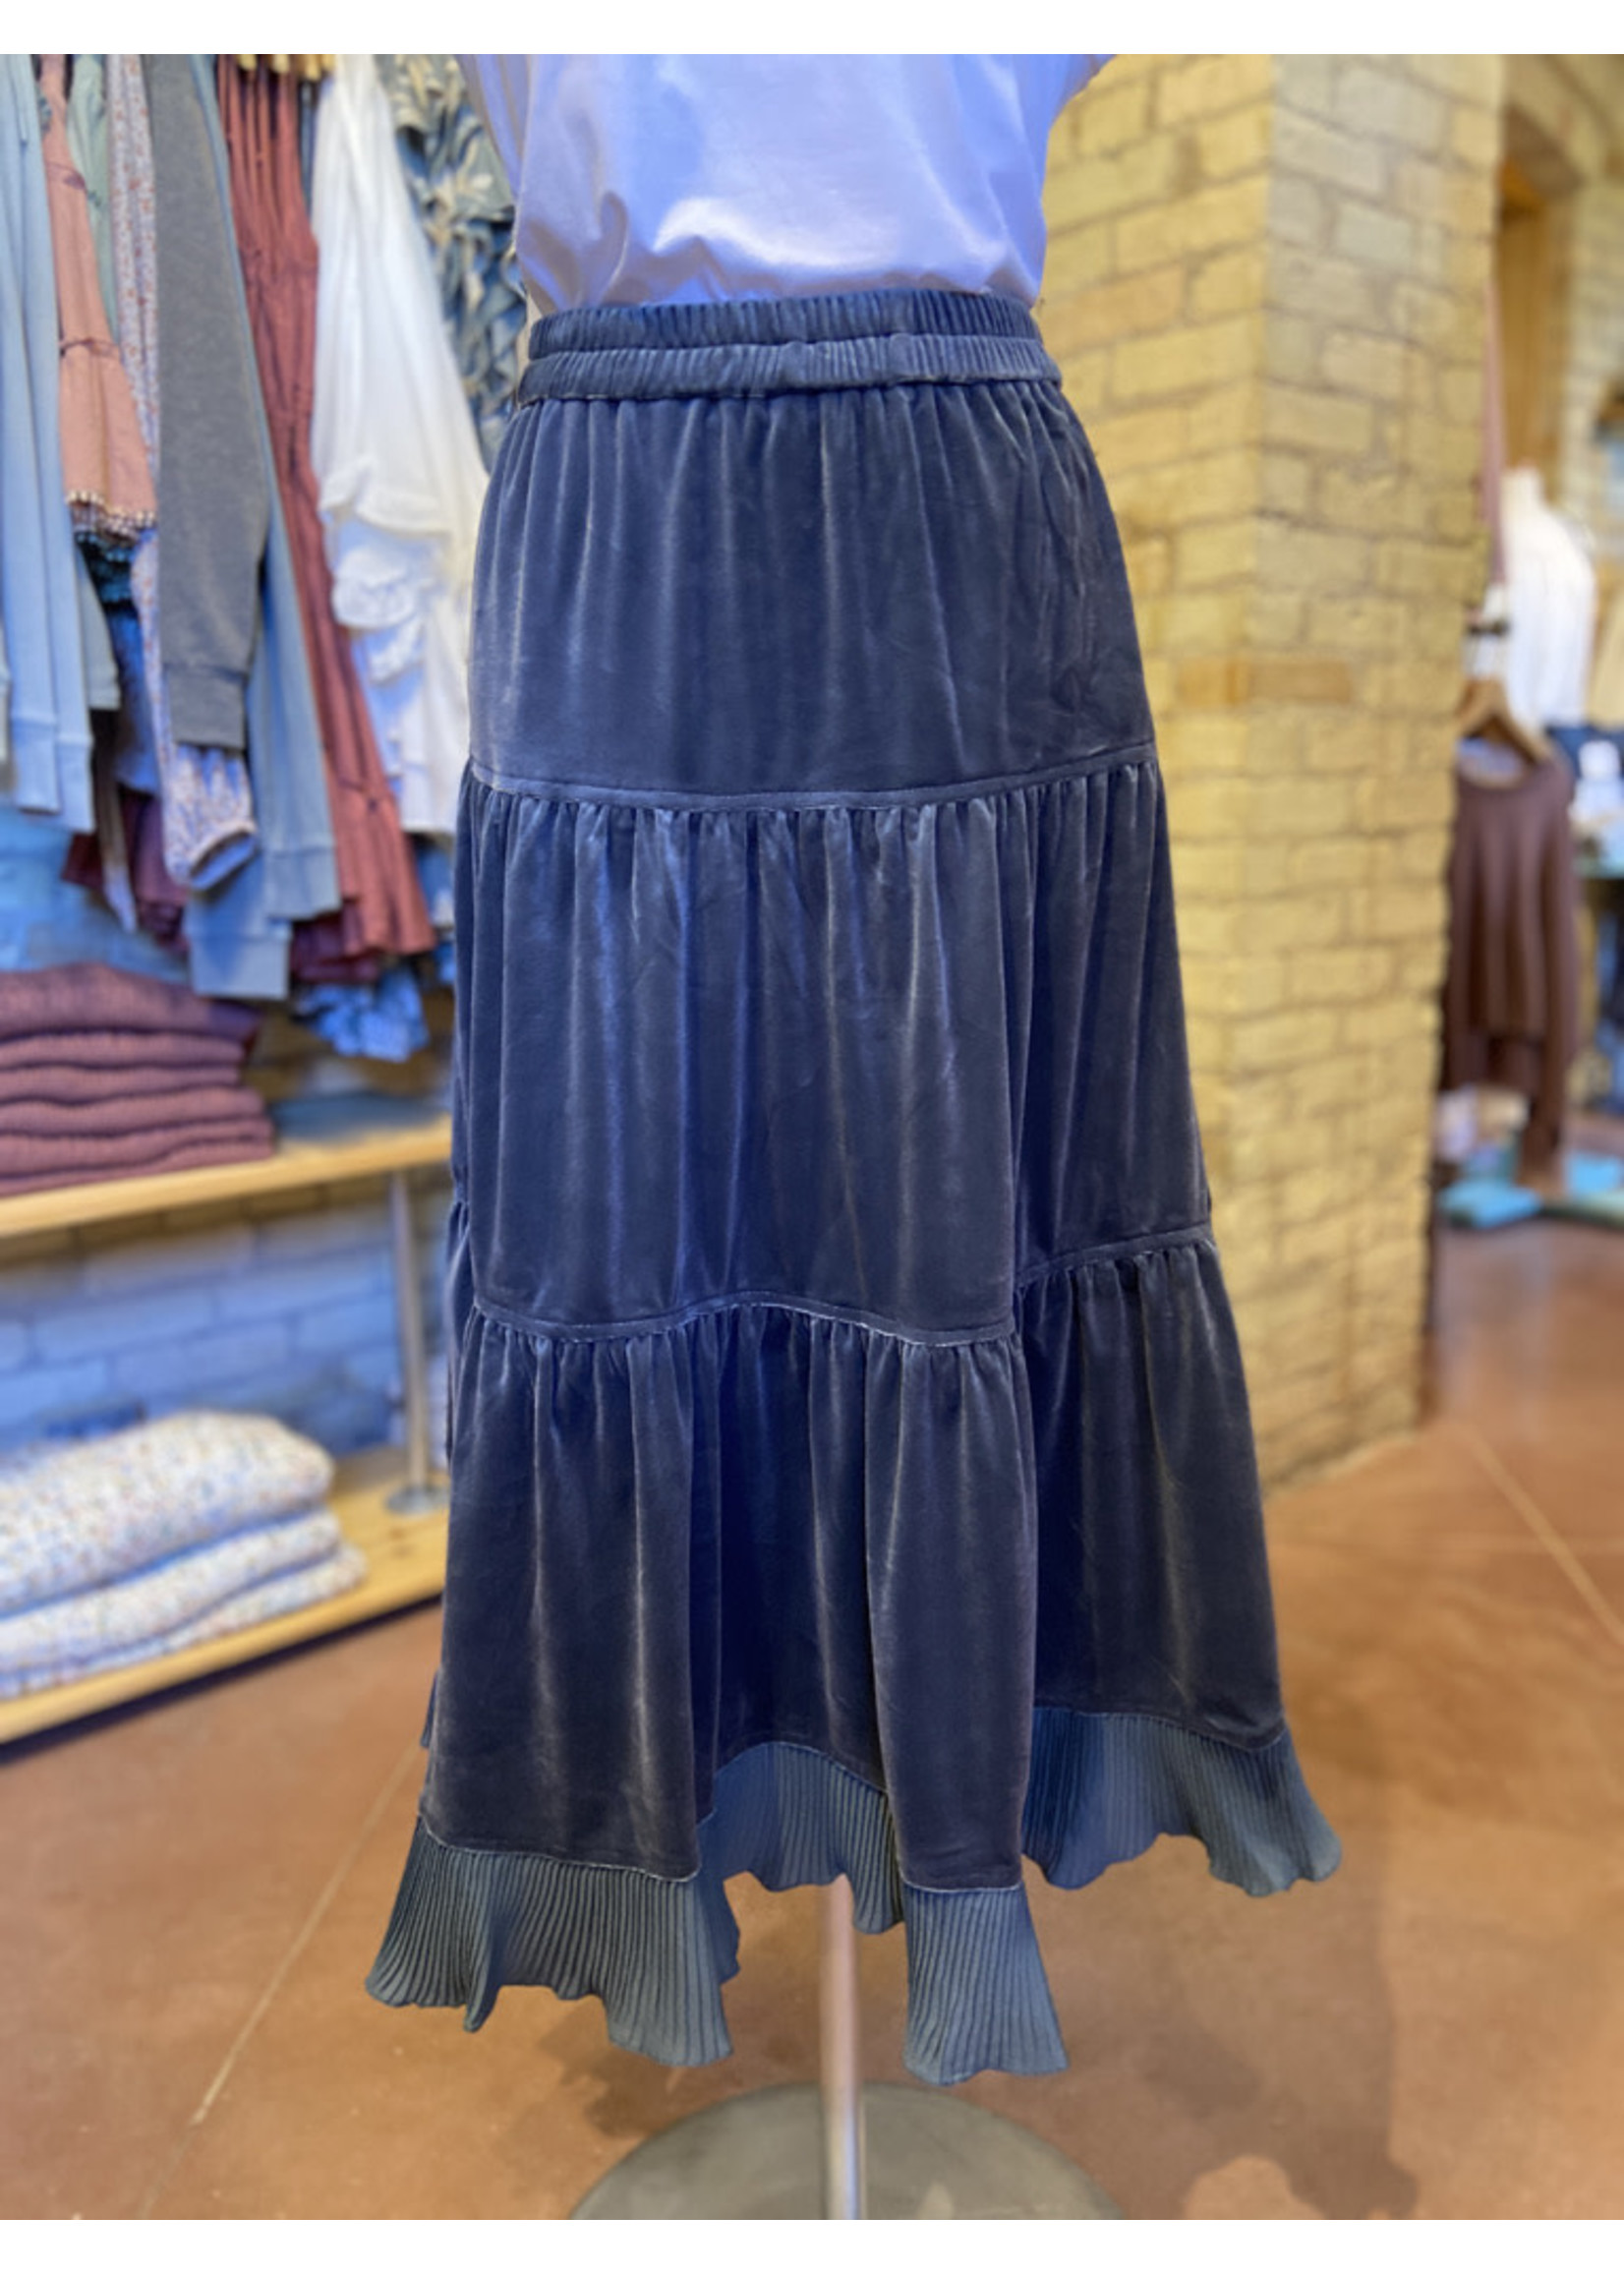 Current Air Velvet Skirt with Pleated Ruffle